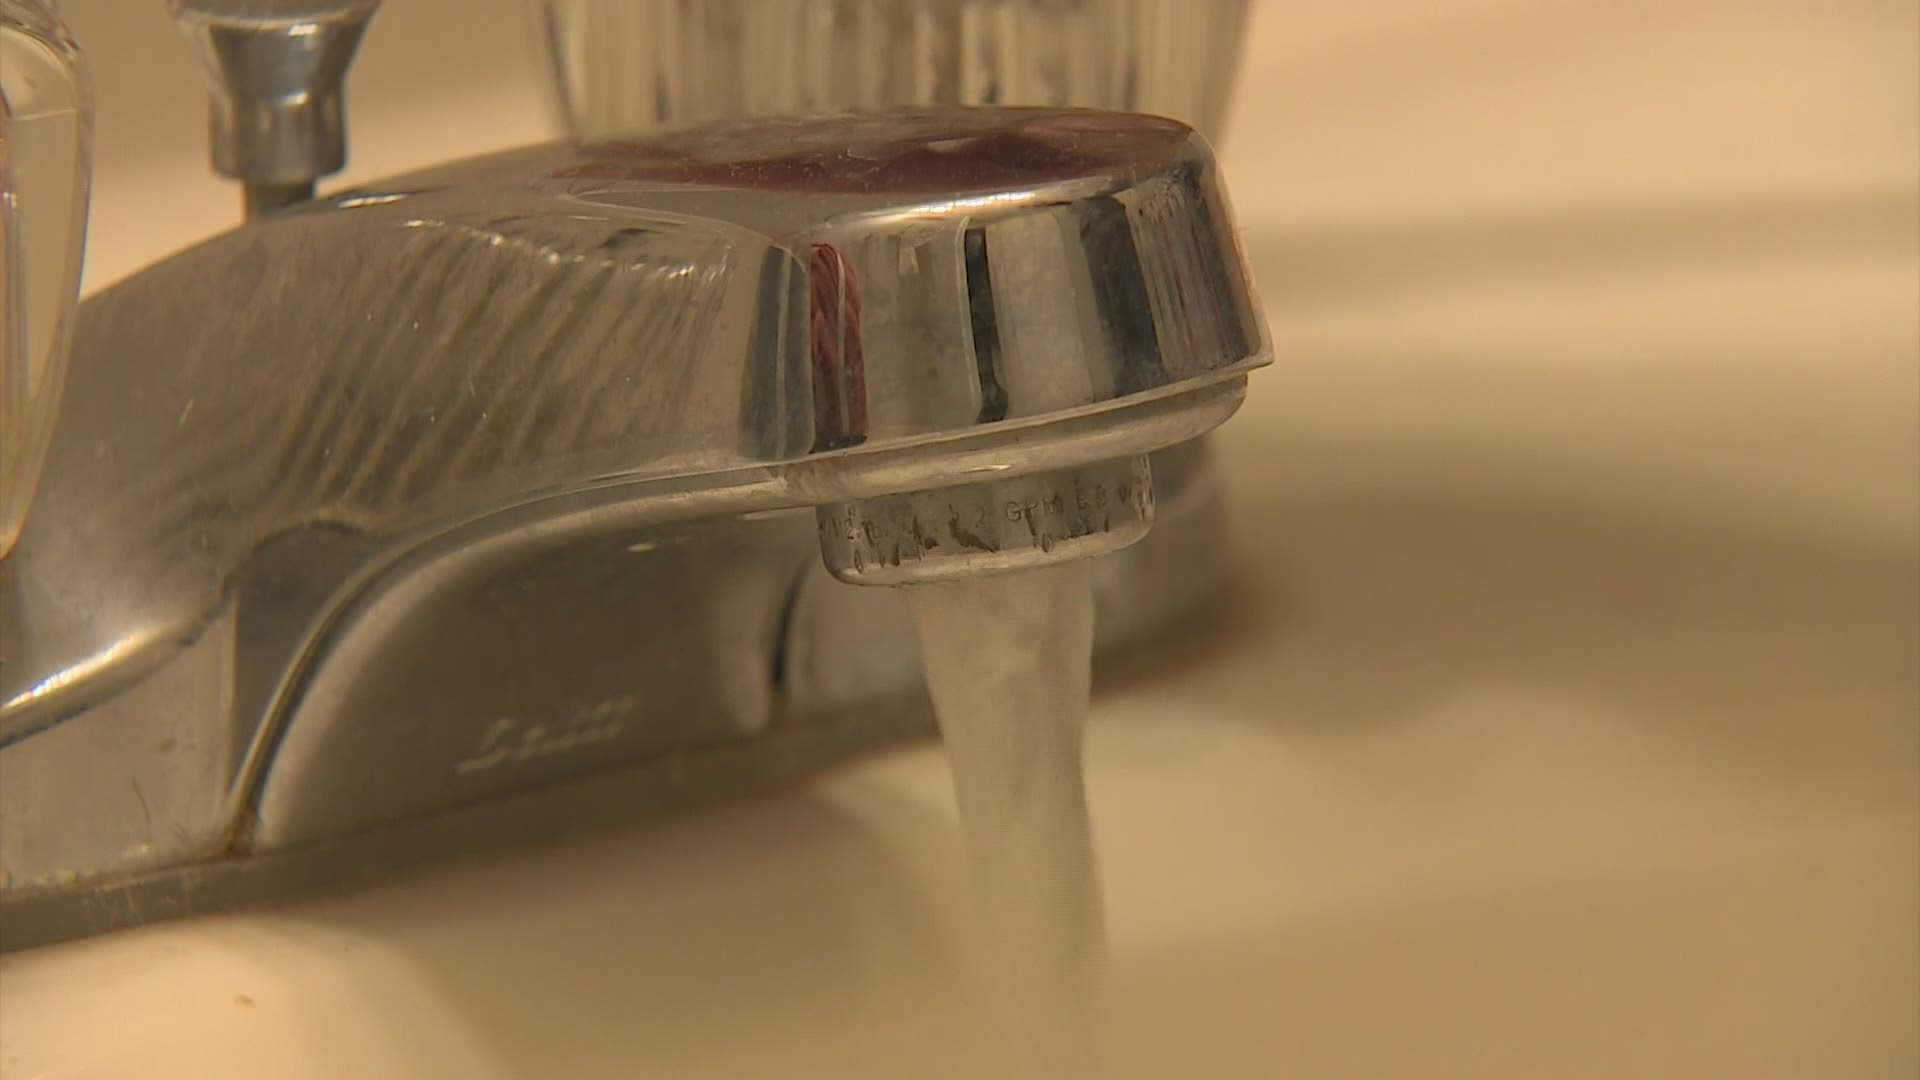 why city of houston is telling people not to run their water during freeze